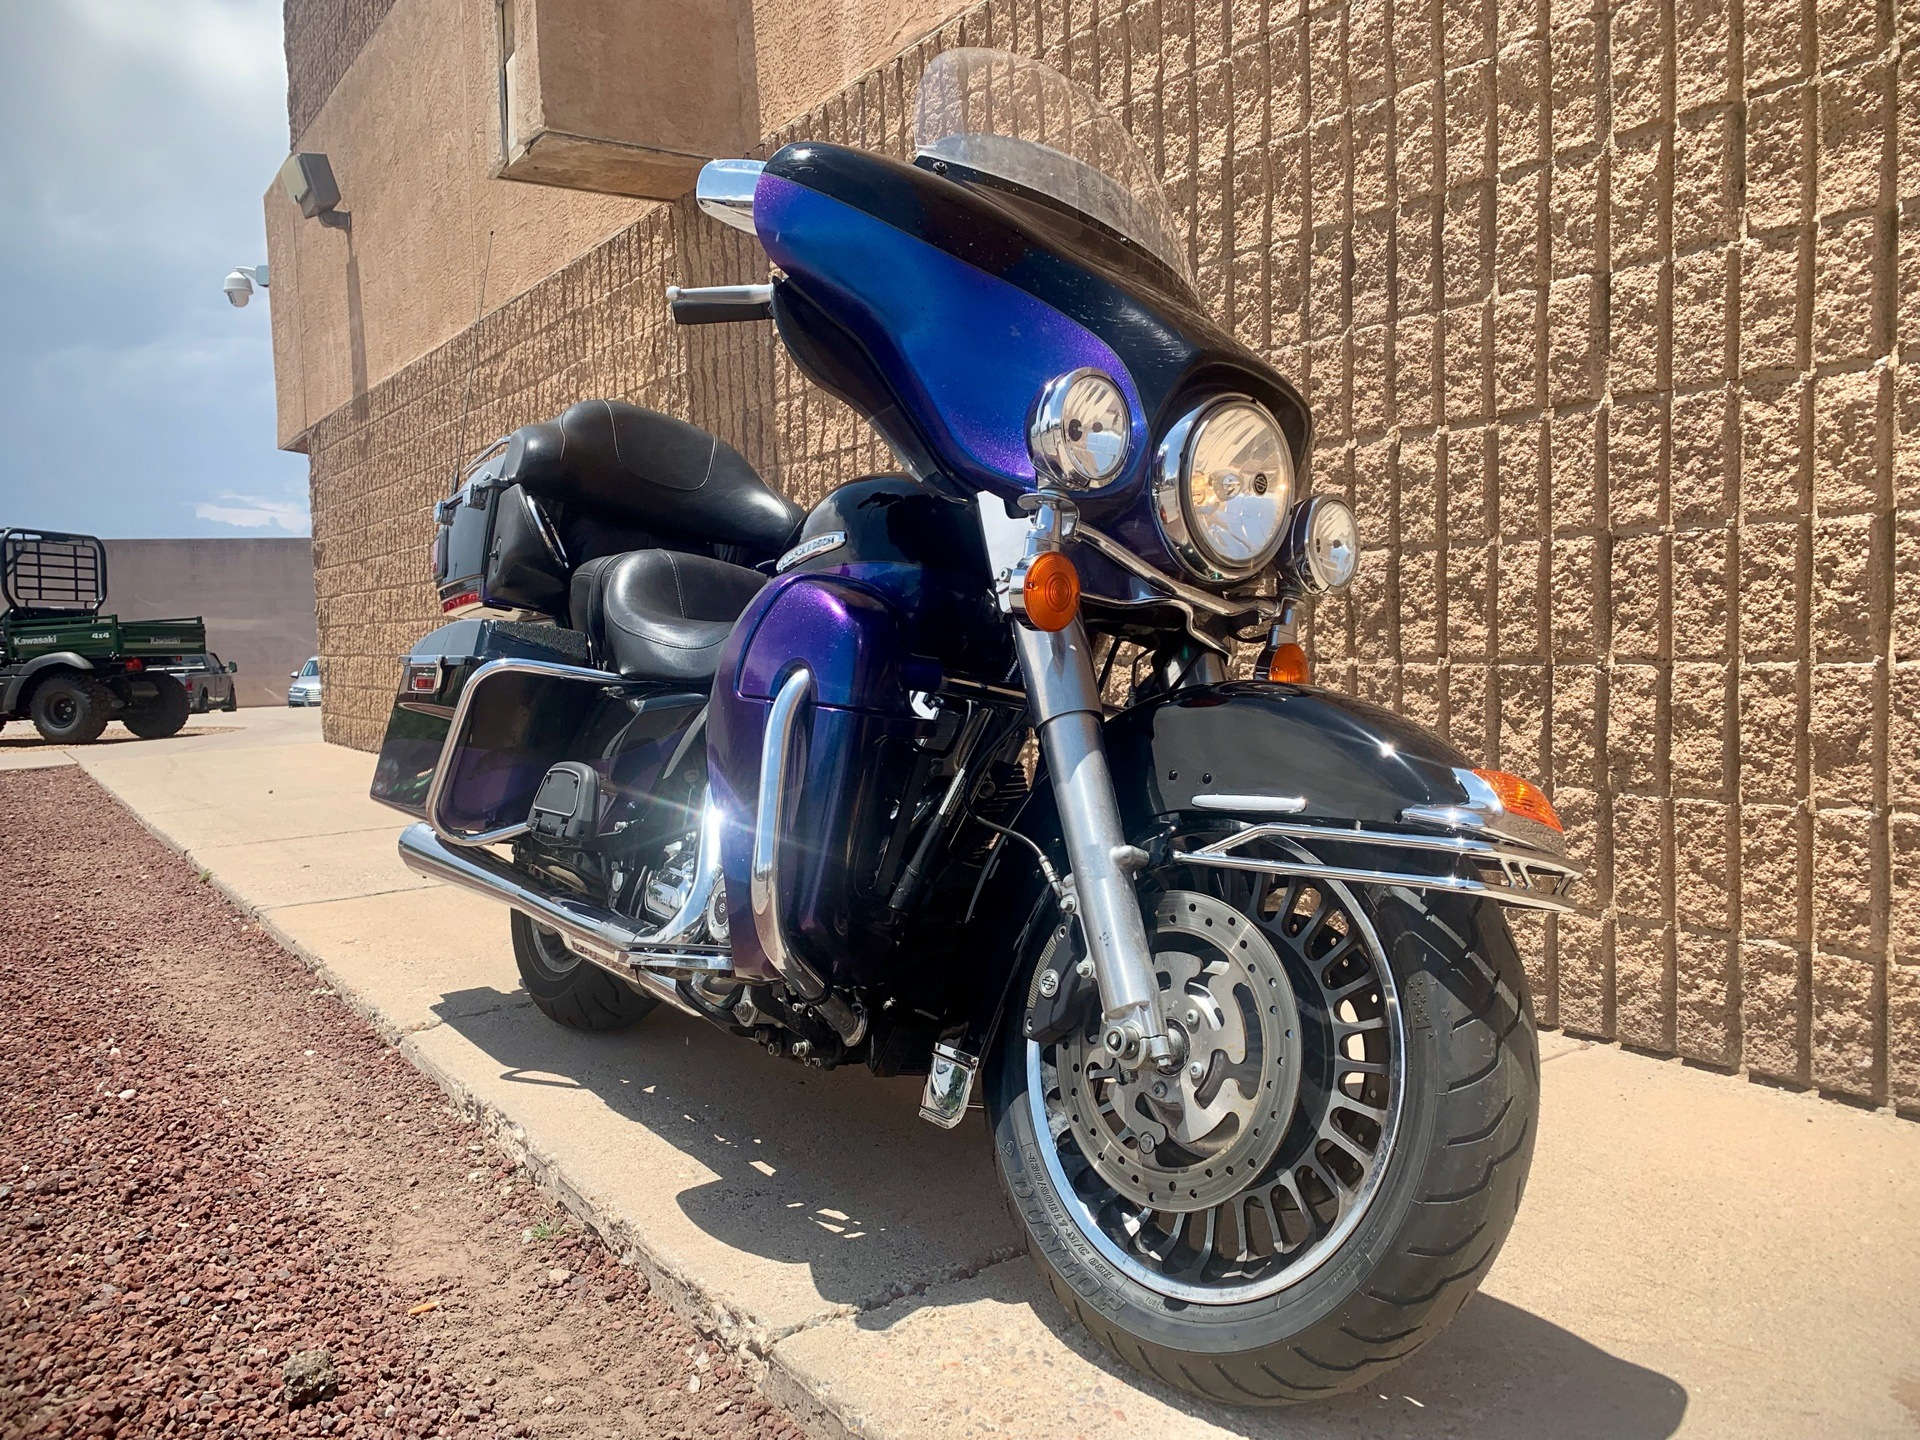 2010 Harley-Davidson Electra Glide® Ultra Limited in Albuquerque, New Mexico - Photo 2